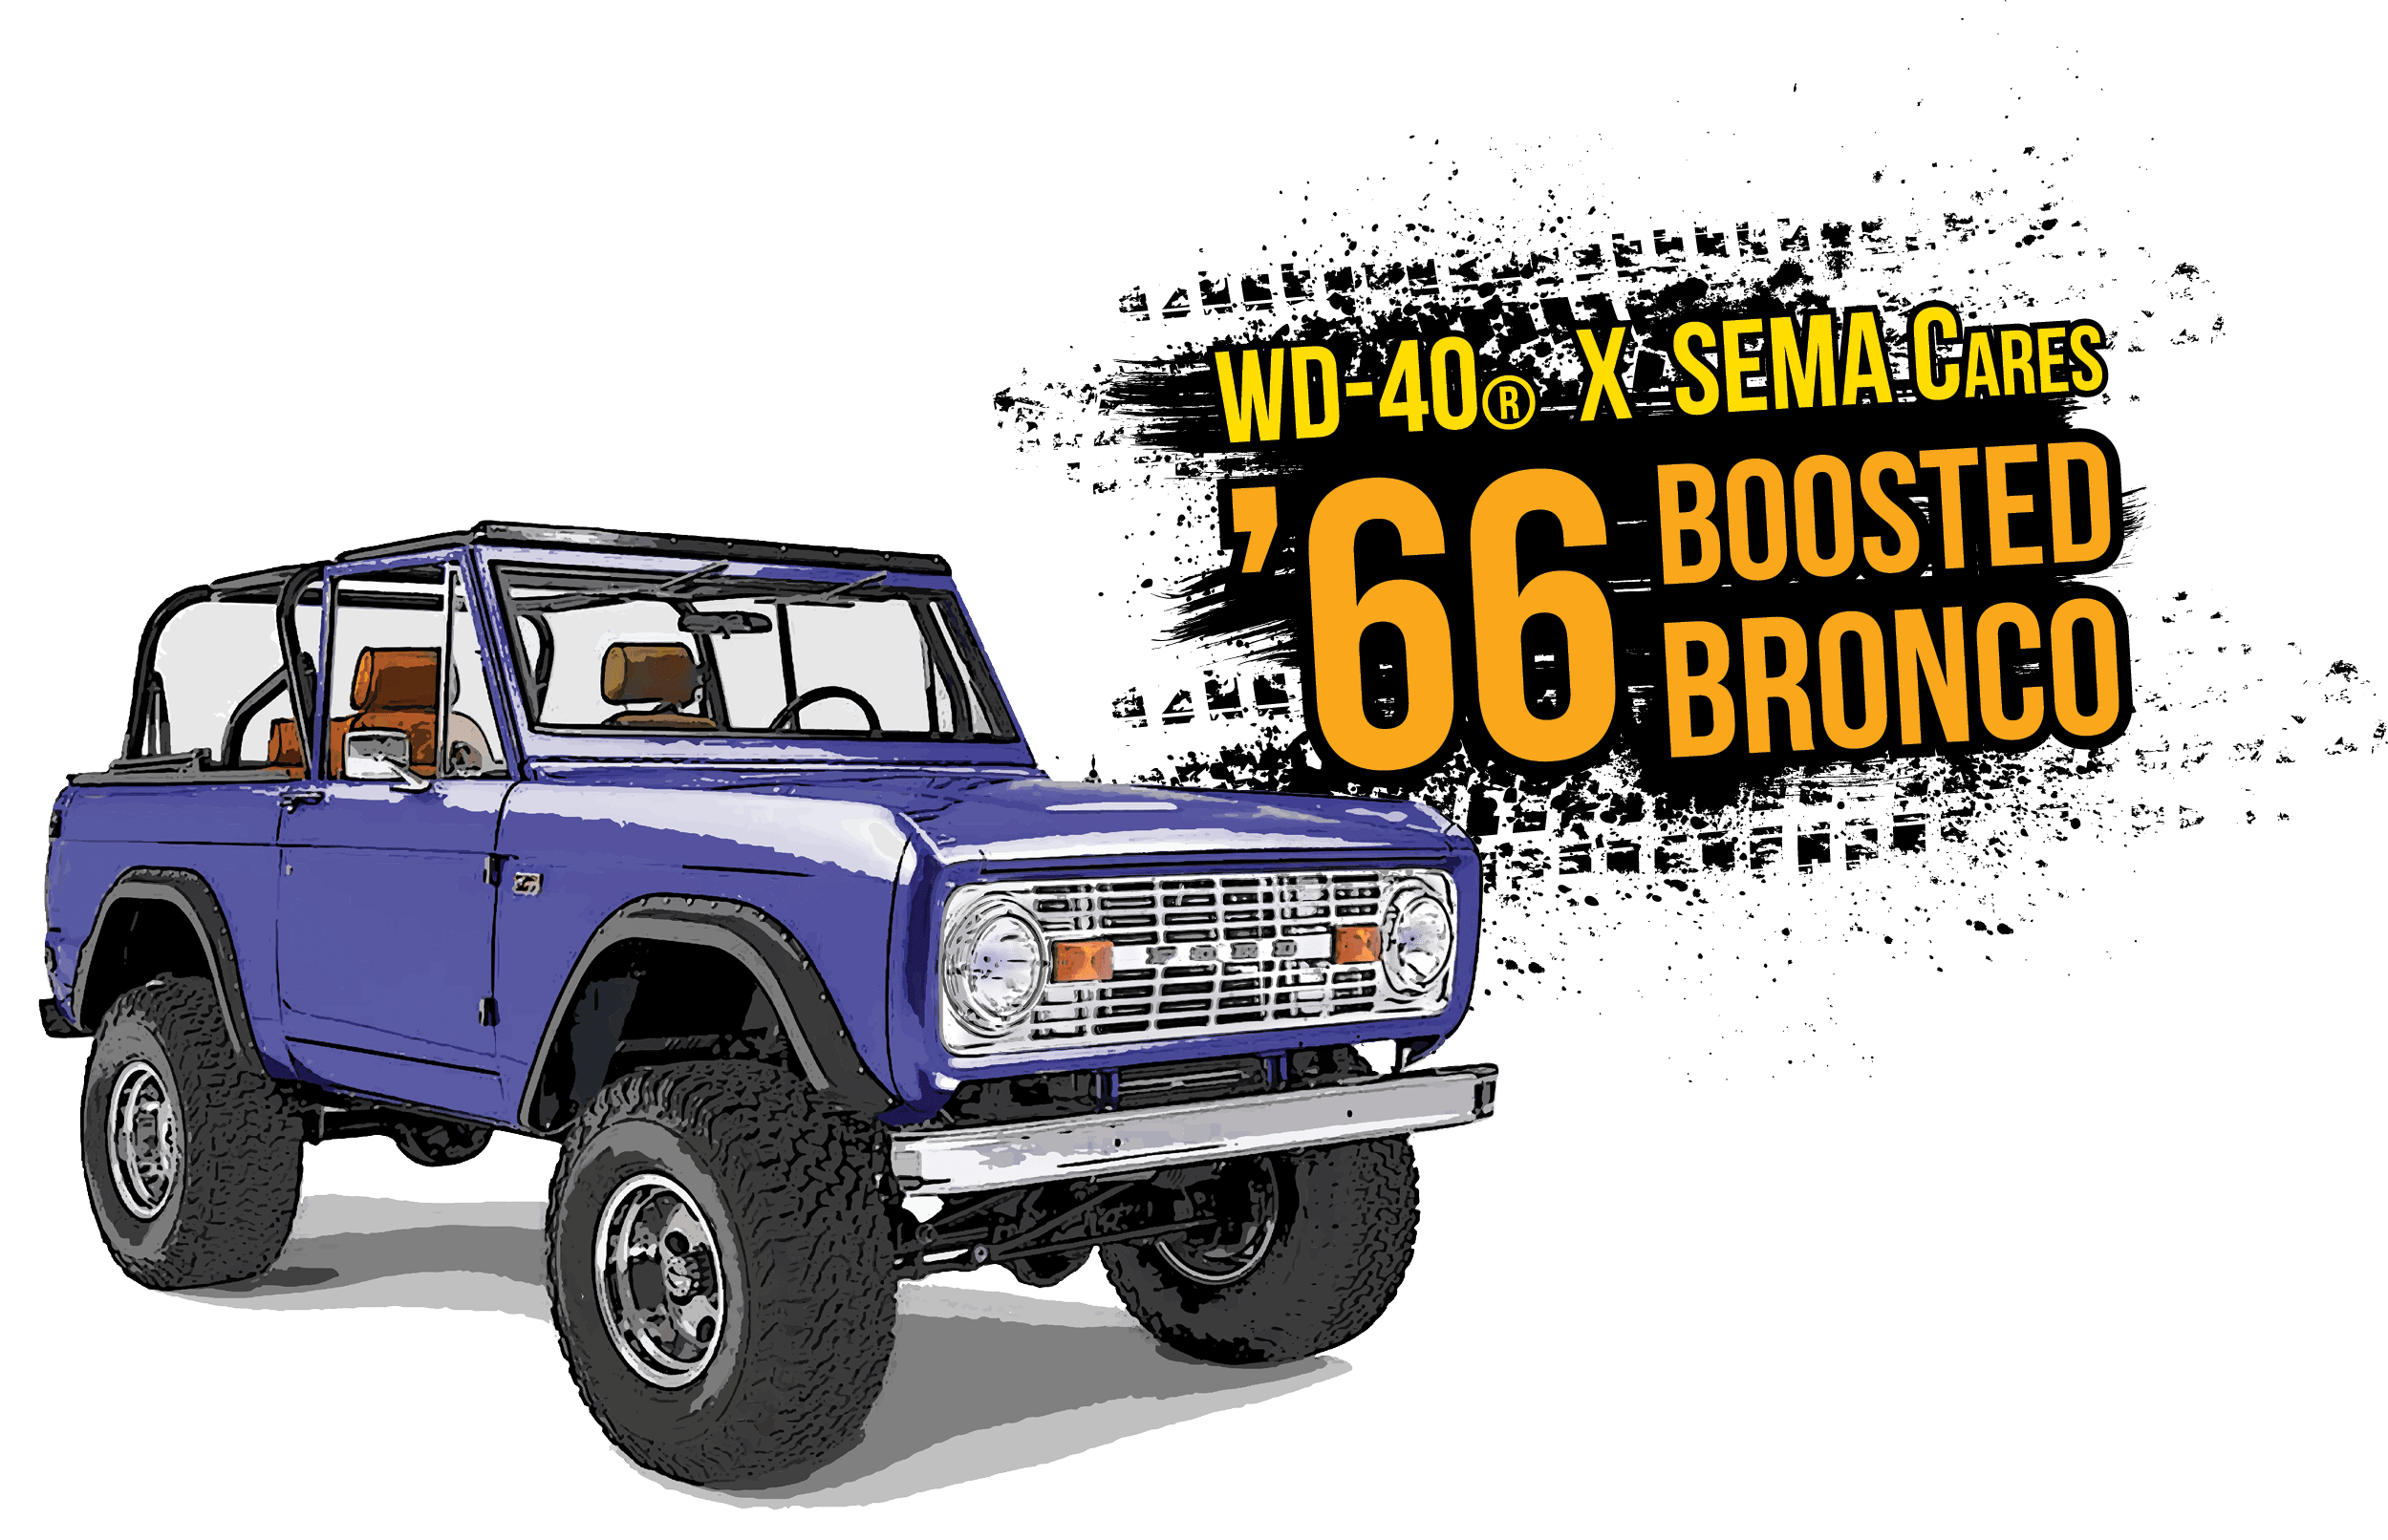 WD-40 Partners with SEMA Cares to Reveal 1966 Ford Bronco